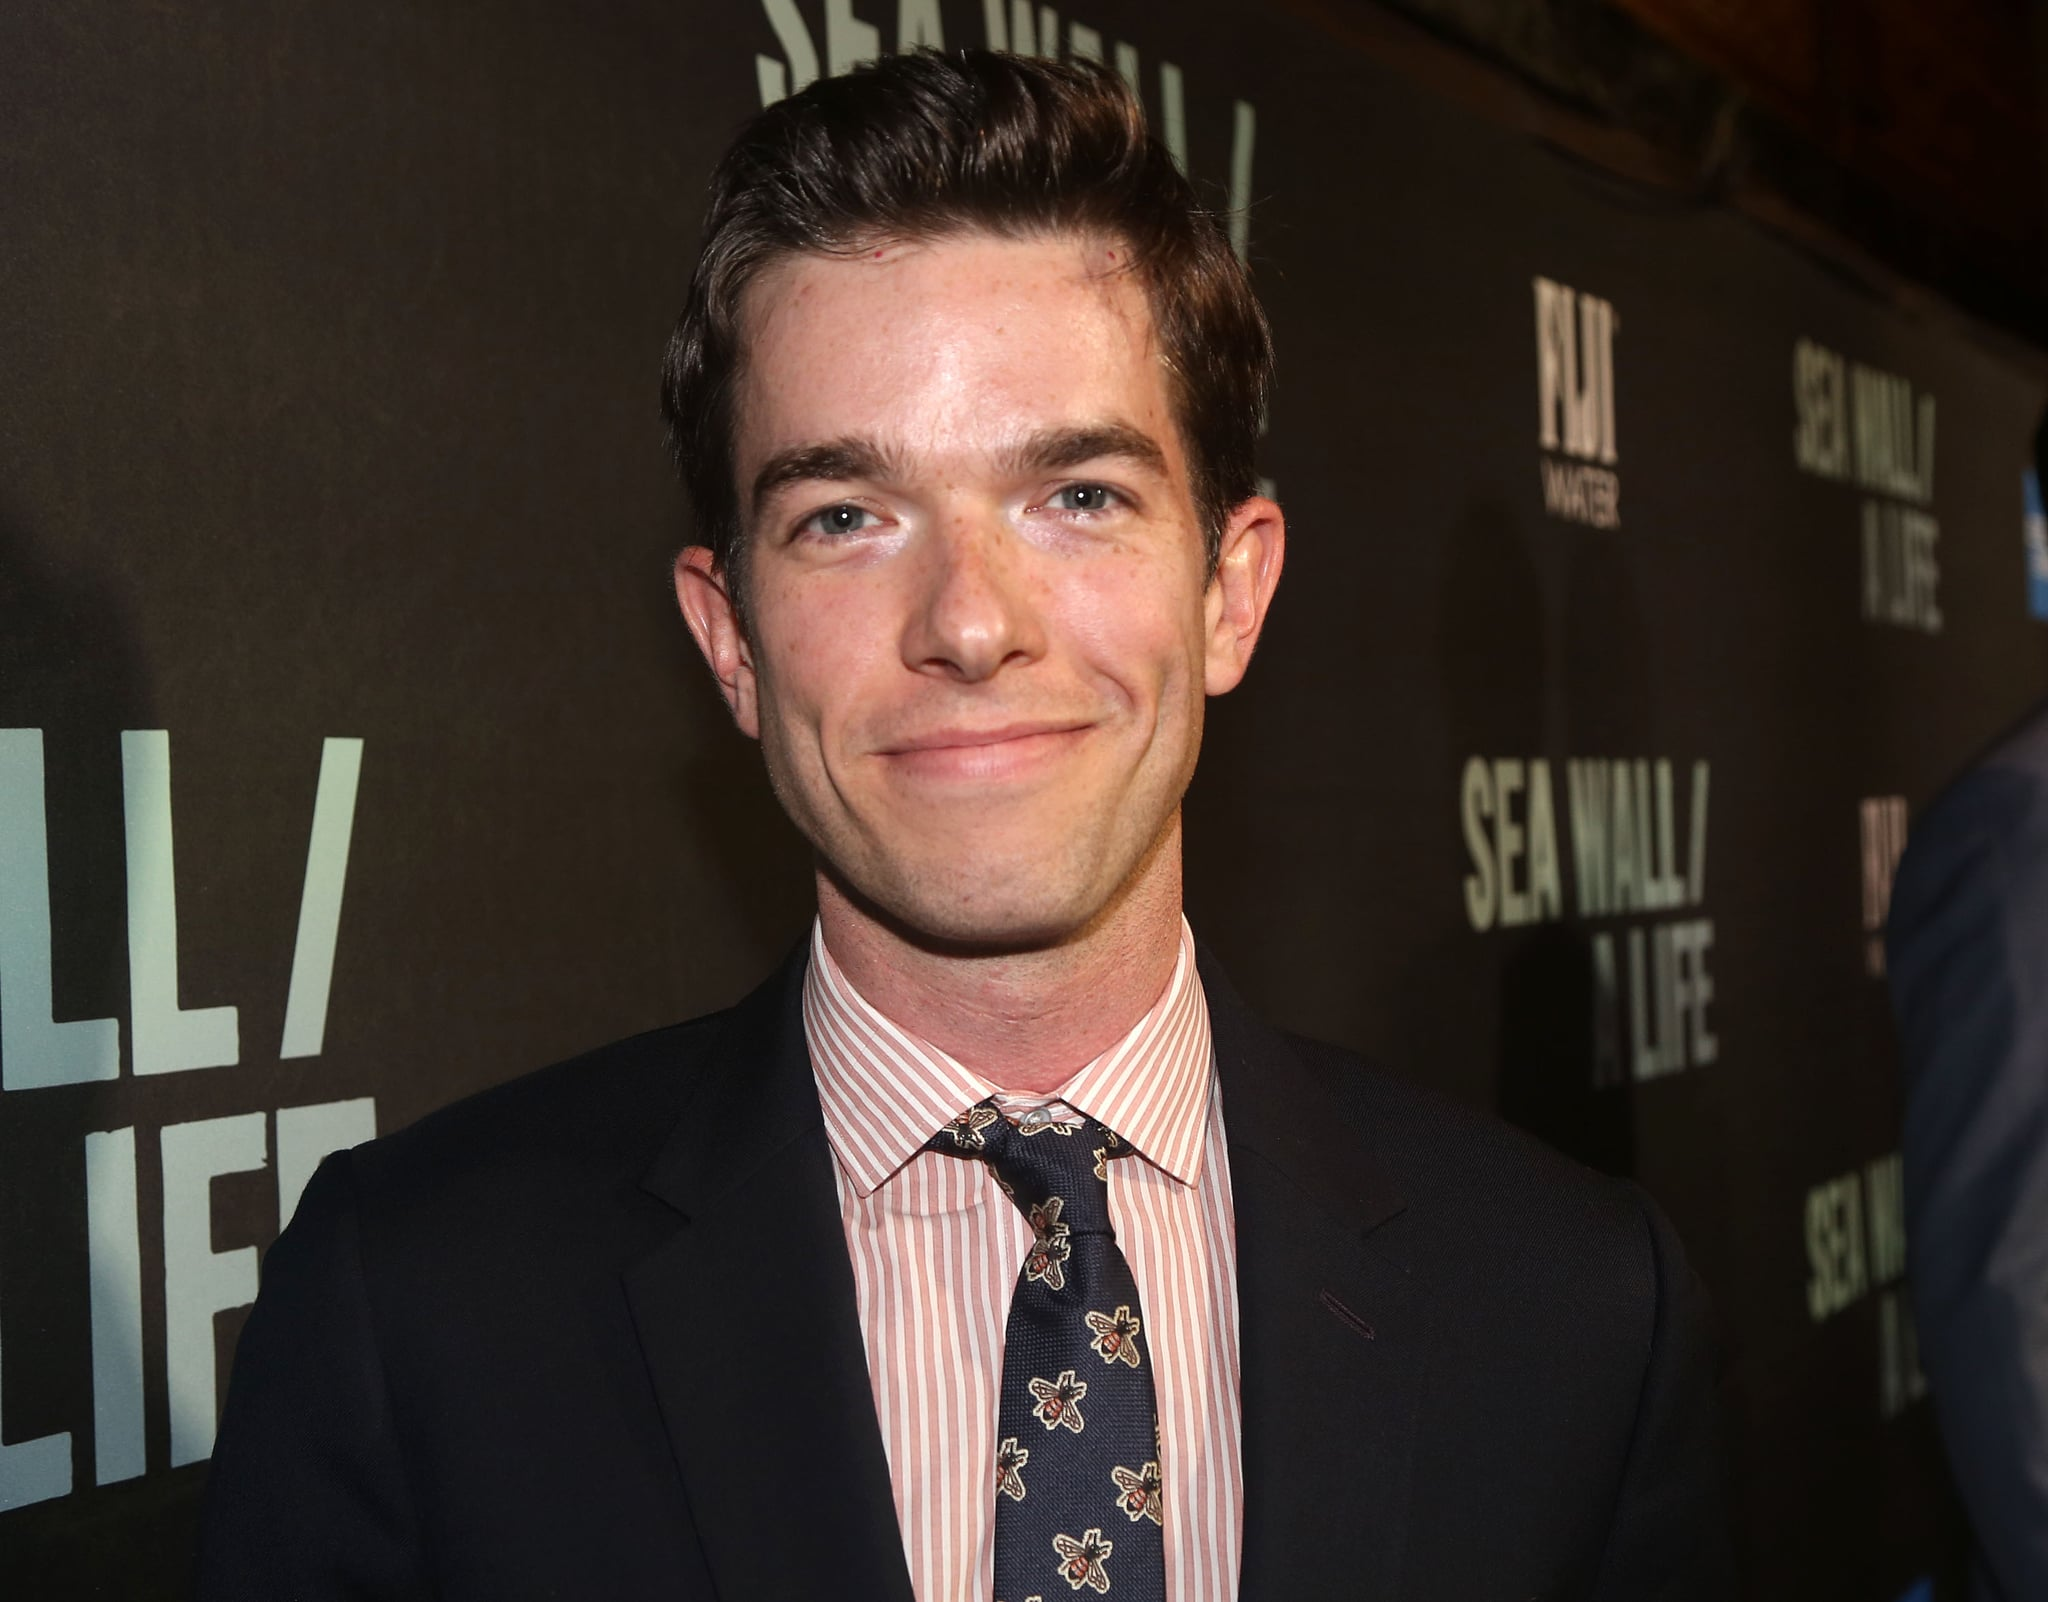 NEW YORK, NY - AUGUST 08: John Mulaney poses at the opening night of